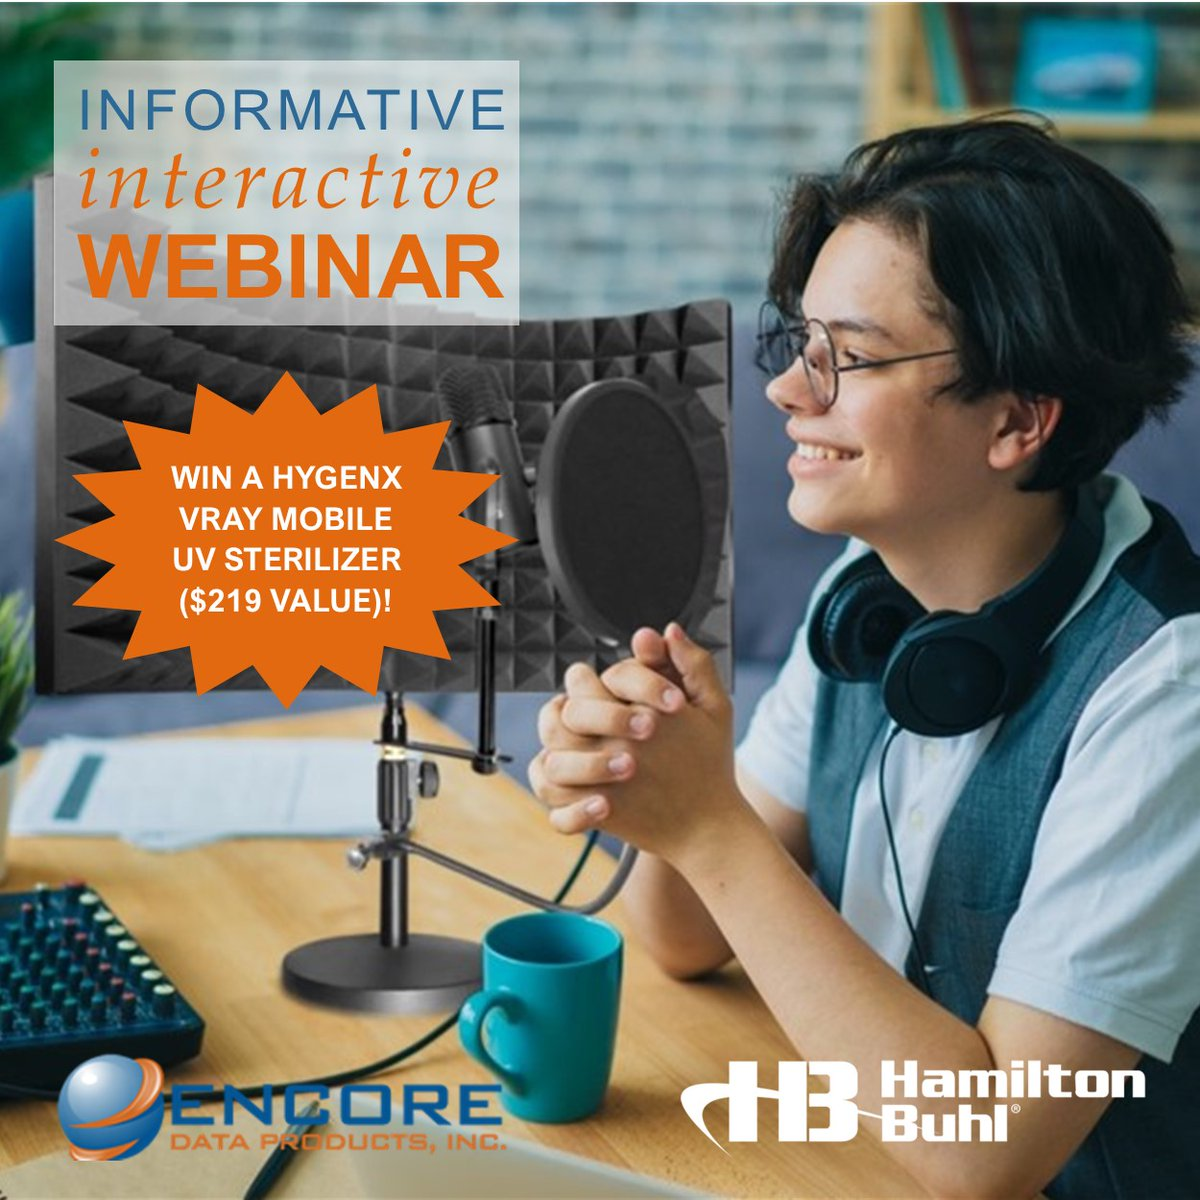 Join Encore and HamiltonBuhl for a 1-hr Webinar Mar-11 on navigating today's in-class, remote & blended learning environments. Dialogue with industry peers & share innovative solutions. Visit https://t.co/MiFbVioUnu https://t.co/sW5y00J6Rm